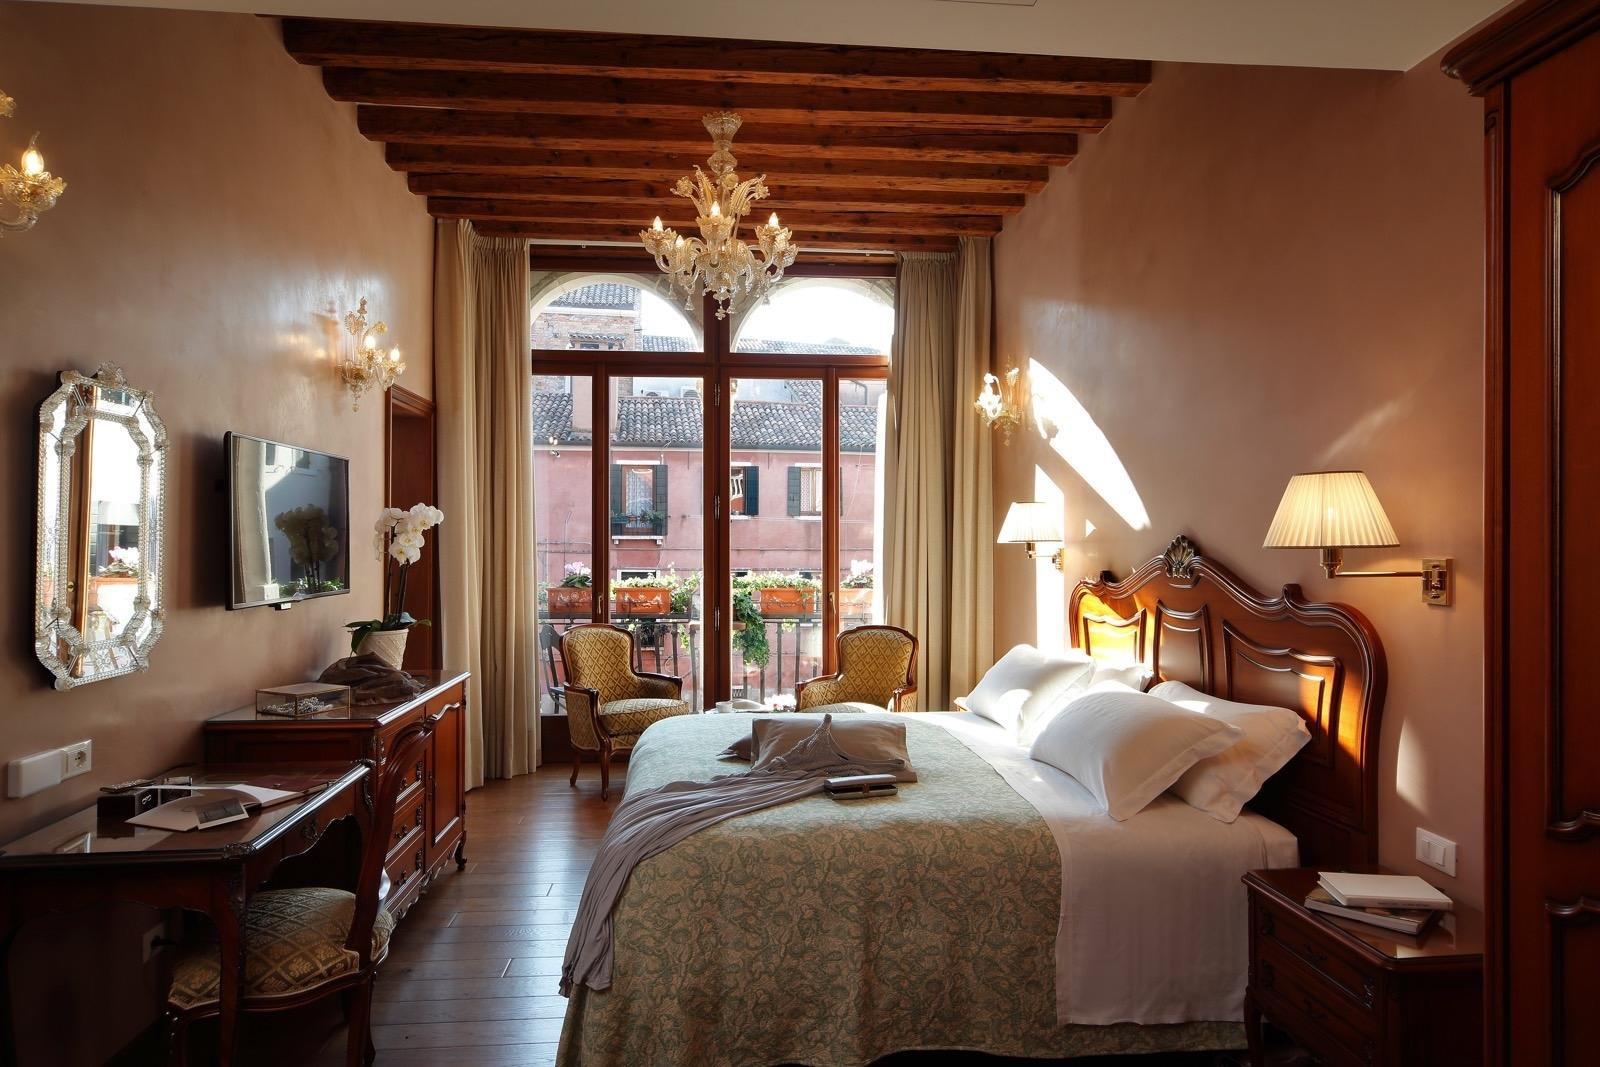 Superior room at Hotel Bisanzio in Venice, Italy